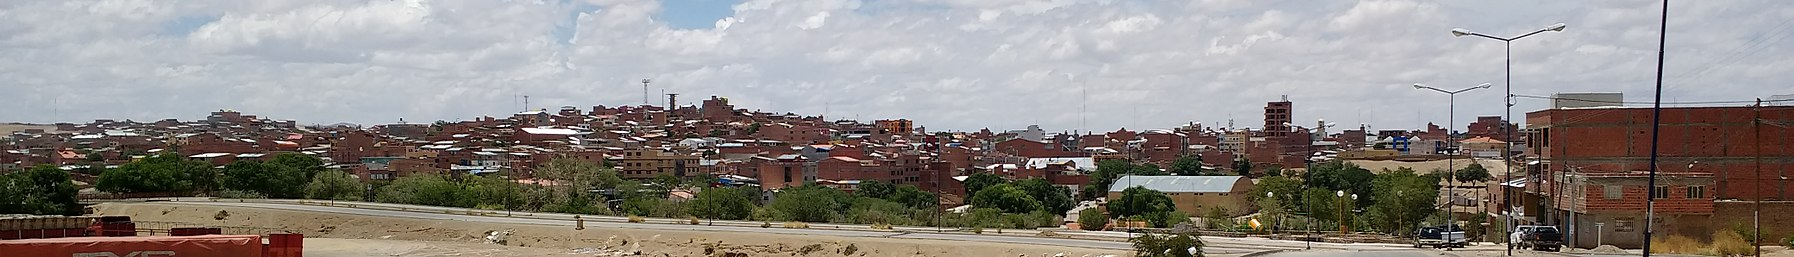 La Quiaca and Villazón banner View of Villazón from La Quiaca.jpg